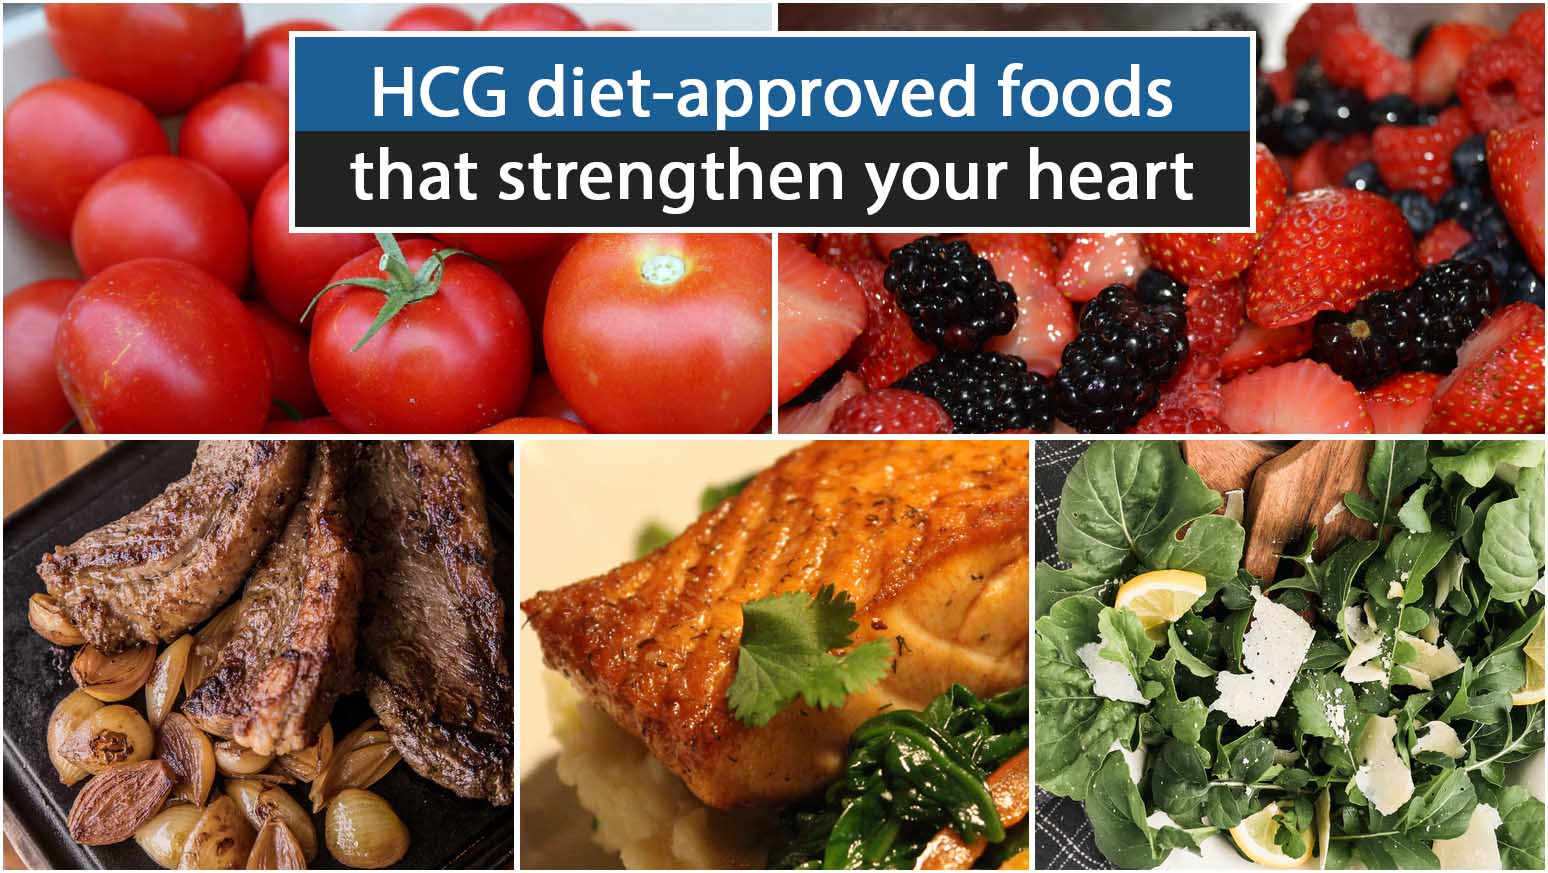 HCG diet-approved foods that strengthen your heart